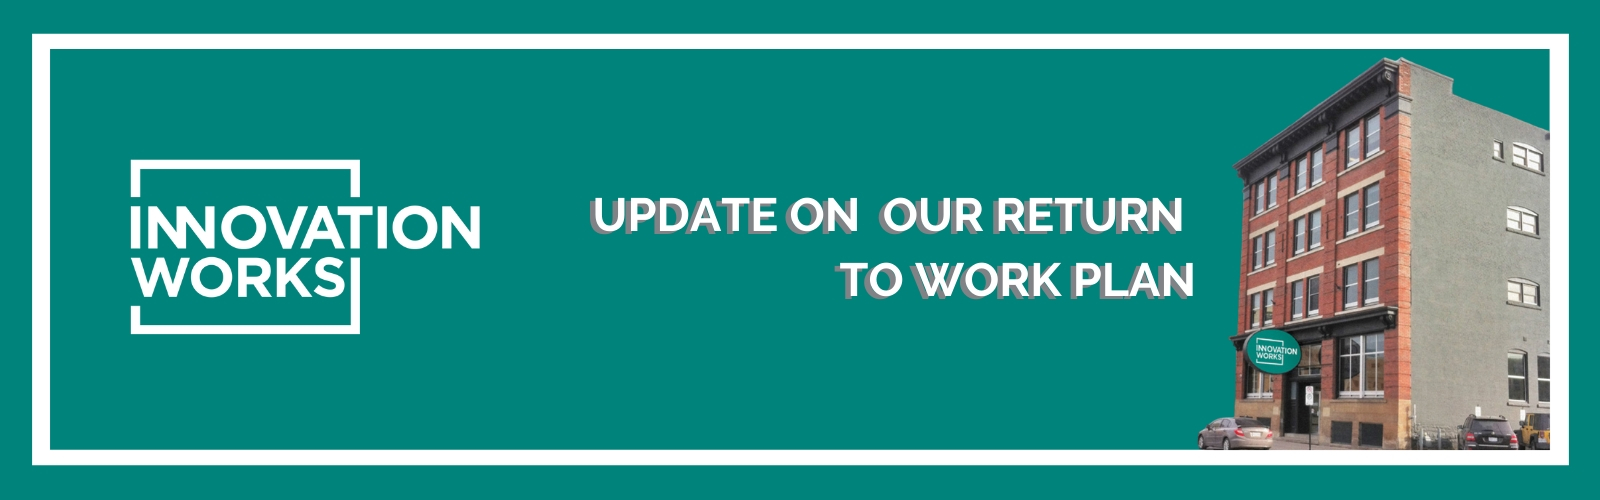 An update on Innovation Works' return to work plan